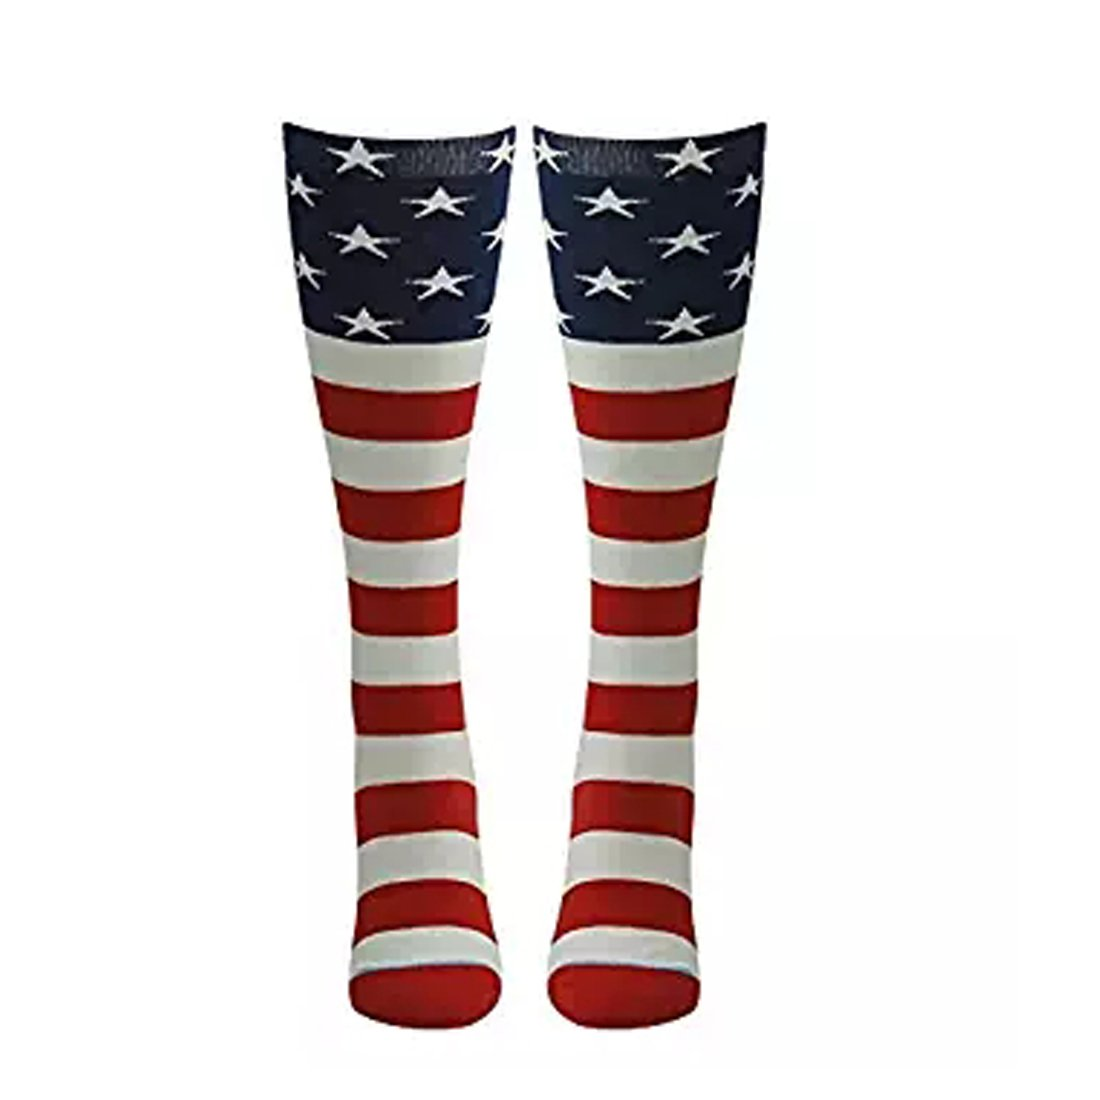 Zoopwon Crazy Funny Chicken Legs/US Flag Boots Knee/Thigh High Novelty Socks Funny Gag Gifts